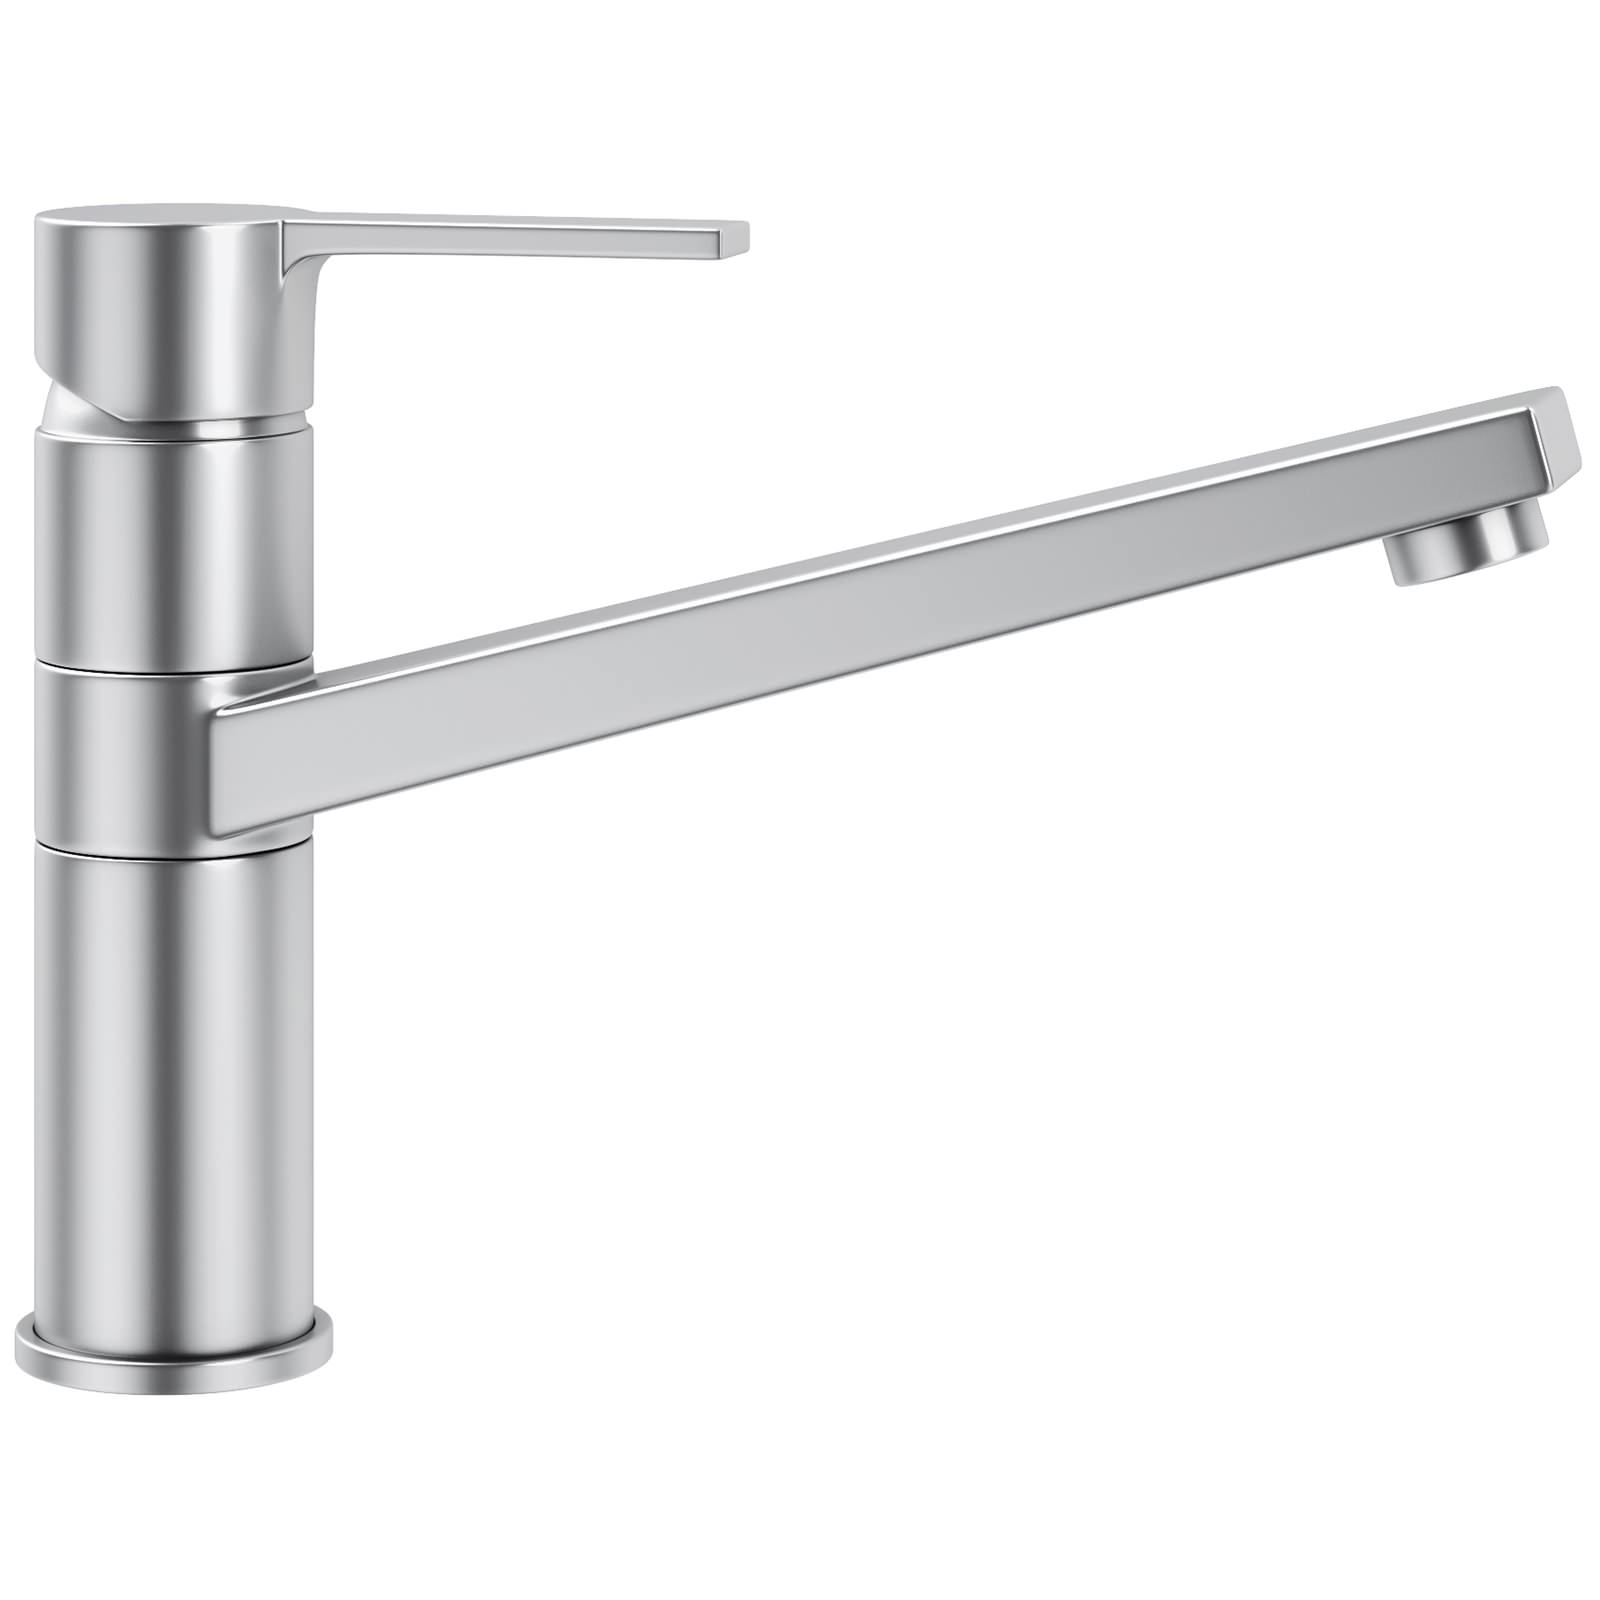 Franke Kitchen Mixer : qs supplies taps kitchen mixer taps franke star kitchen sink mixer tap ...